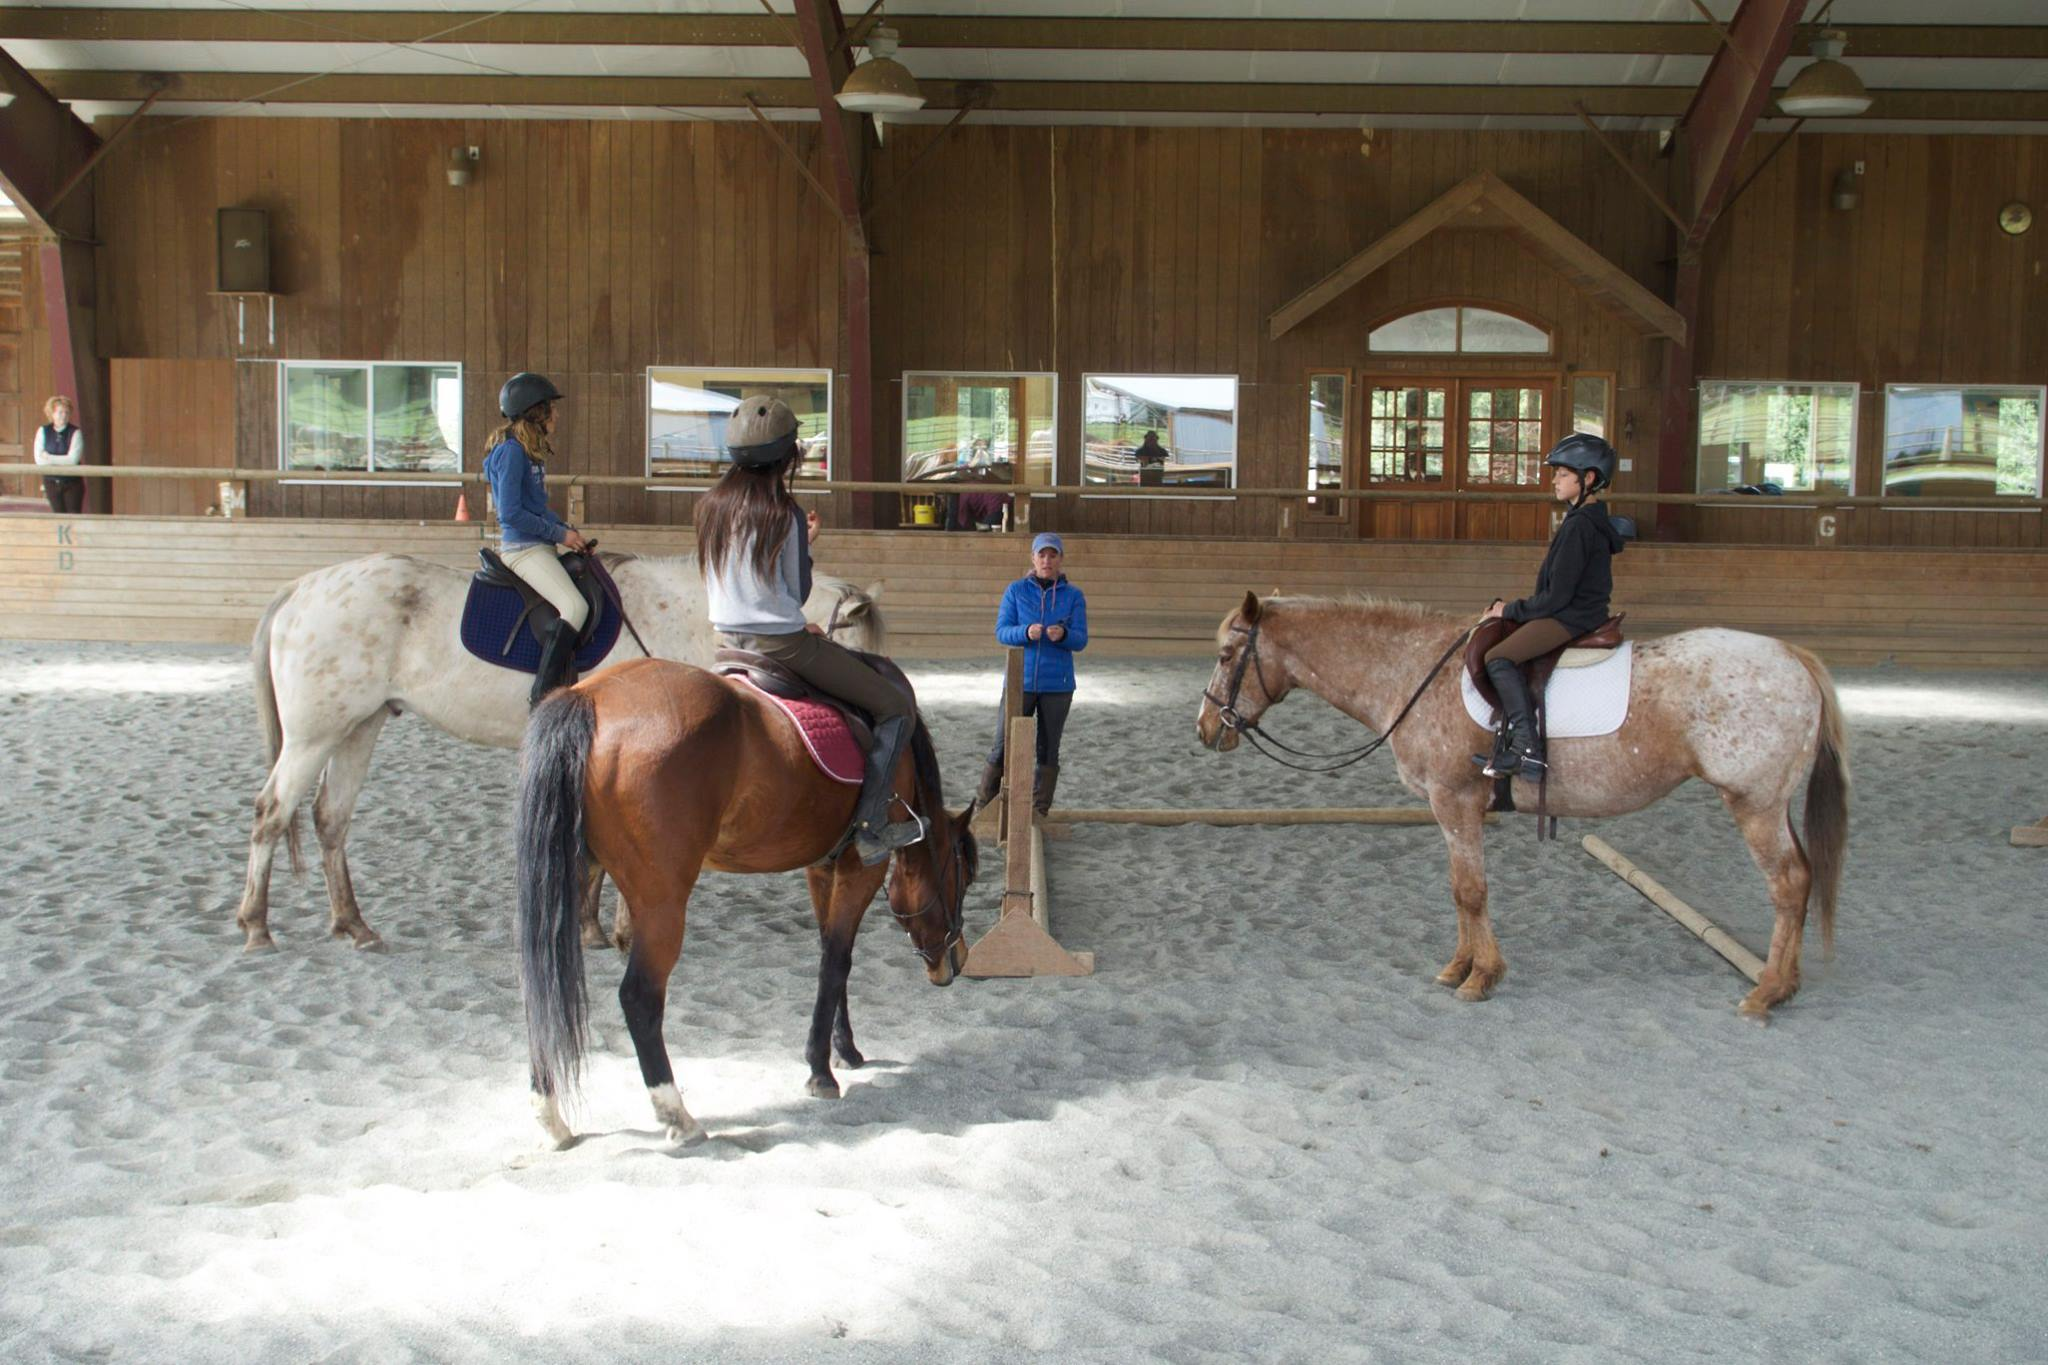 Freedom Farm is a natural horsemanship-based training and boarding facility, offering youth horsemanship programs as well as adult classes and lessons.